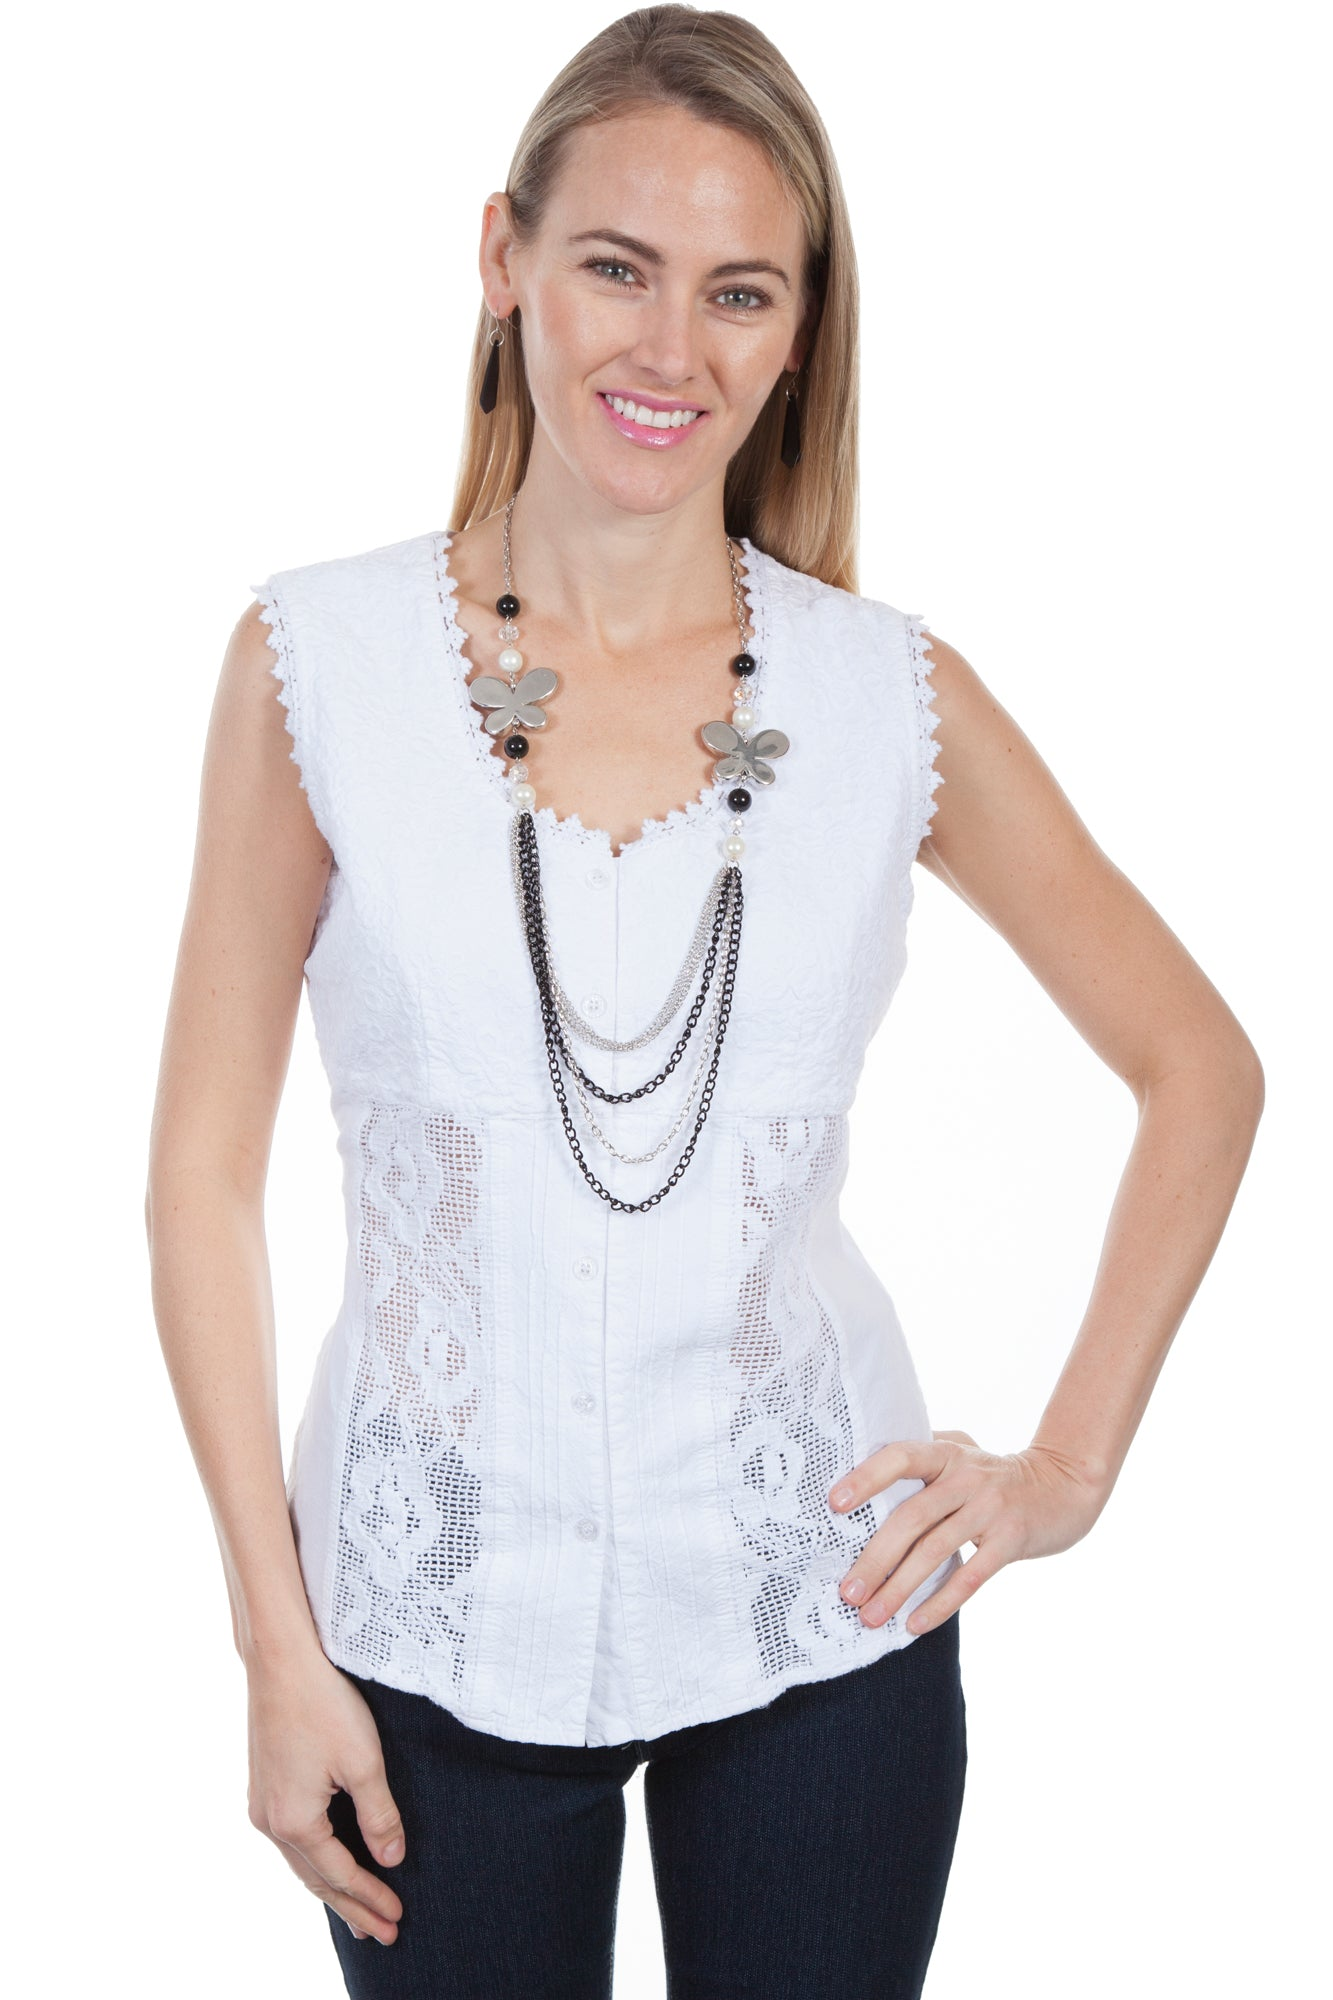 80a6f8d2ccd7 Scully Womens White 100% Cotton Crochet S/S Tunic. Tap to expand / Swipe  for next